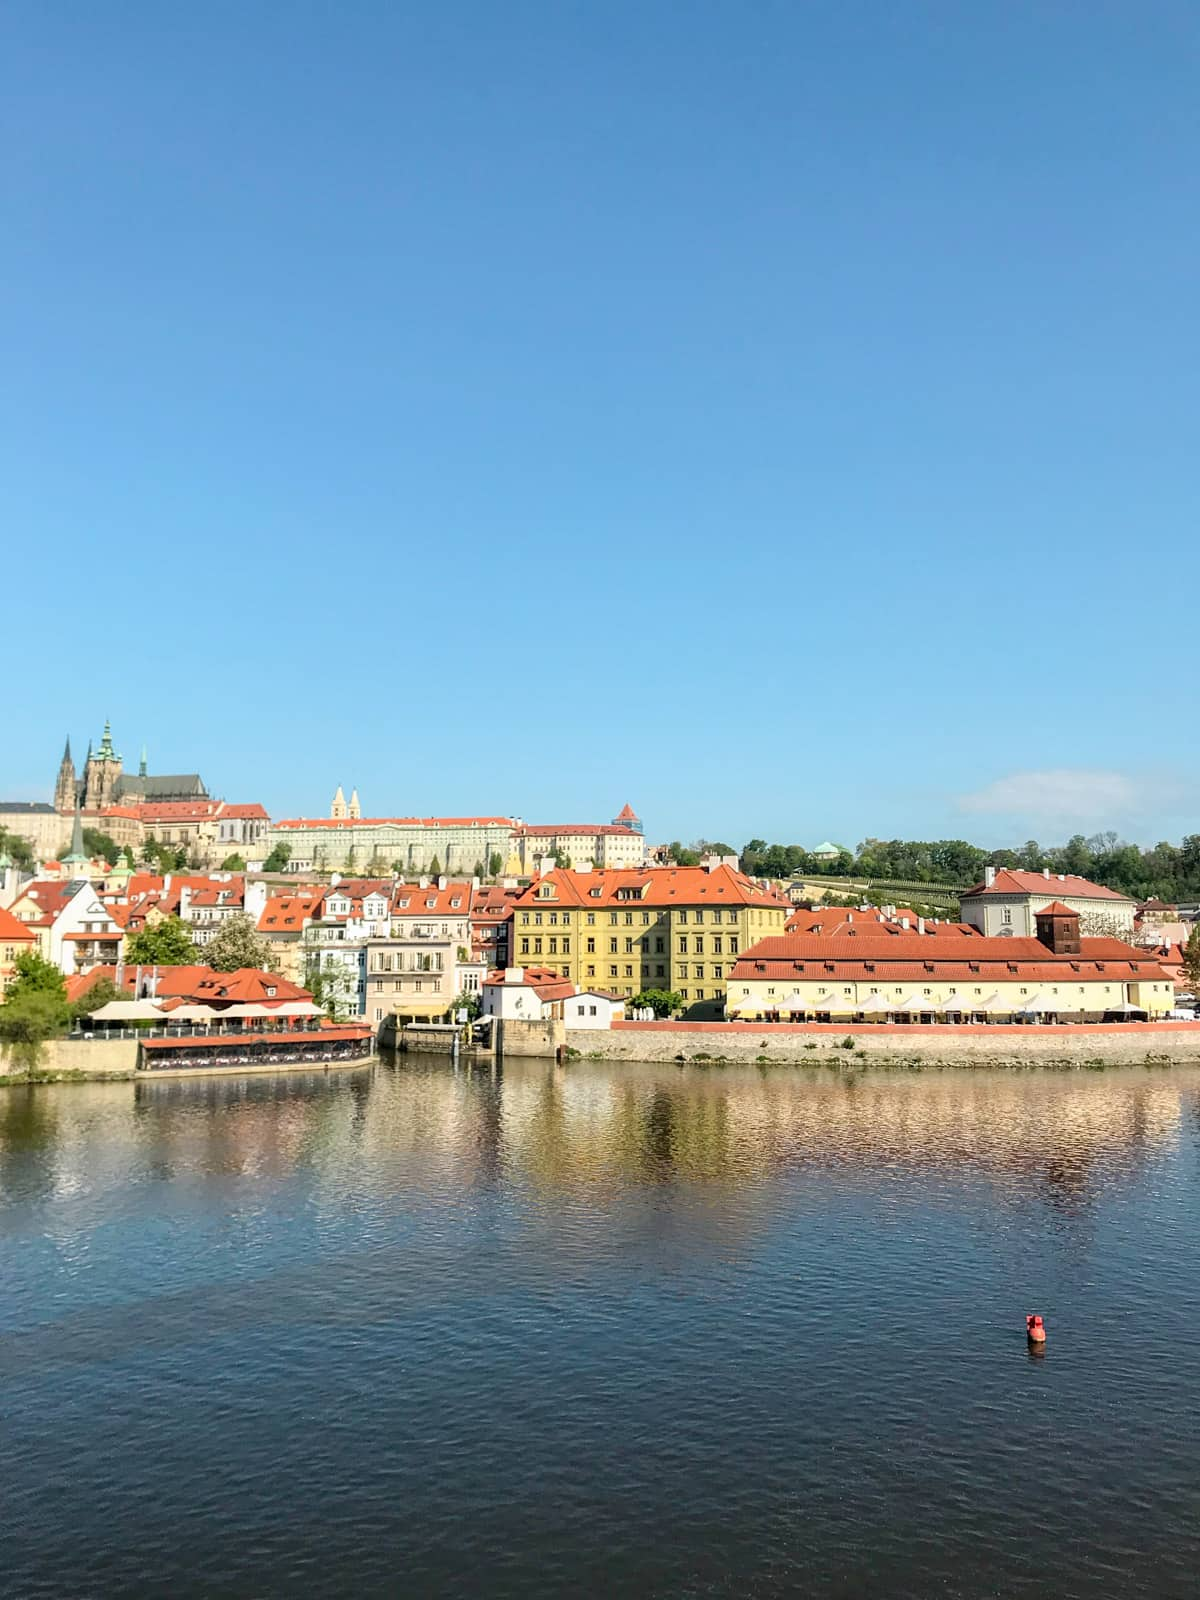 A view of part of the city of Prague as seen from across the river